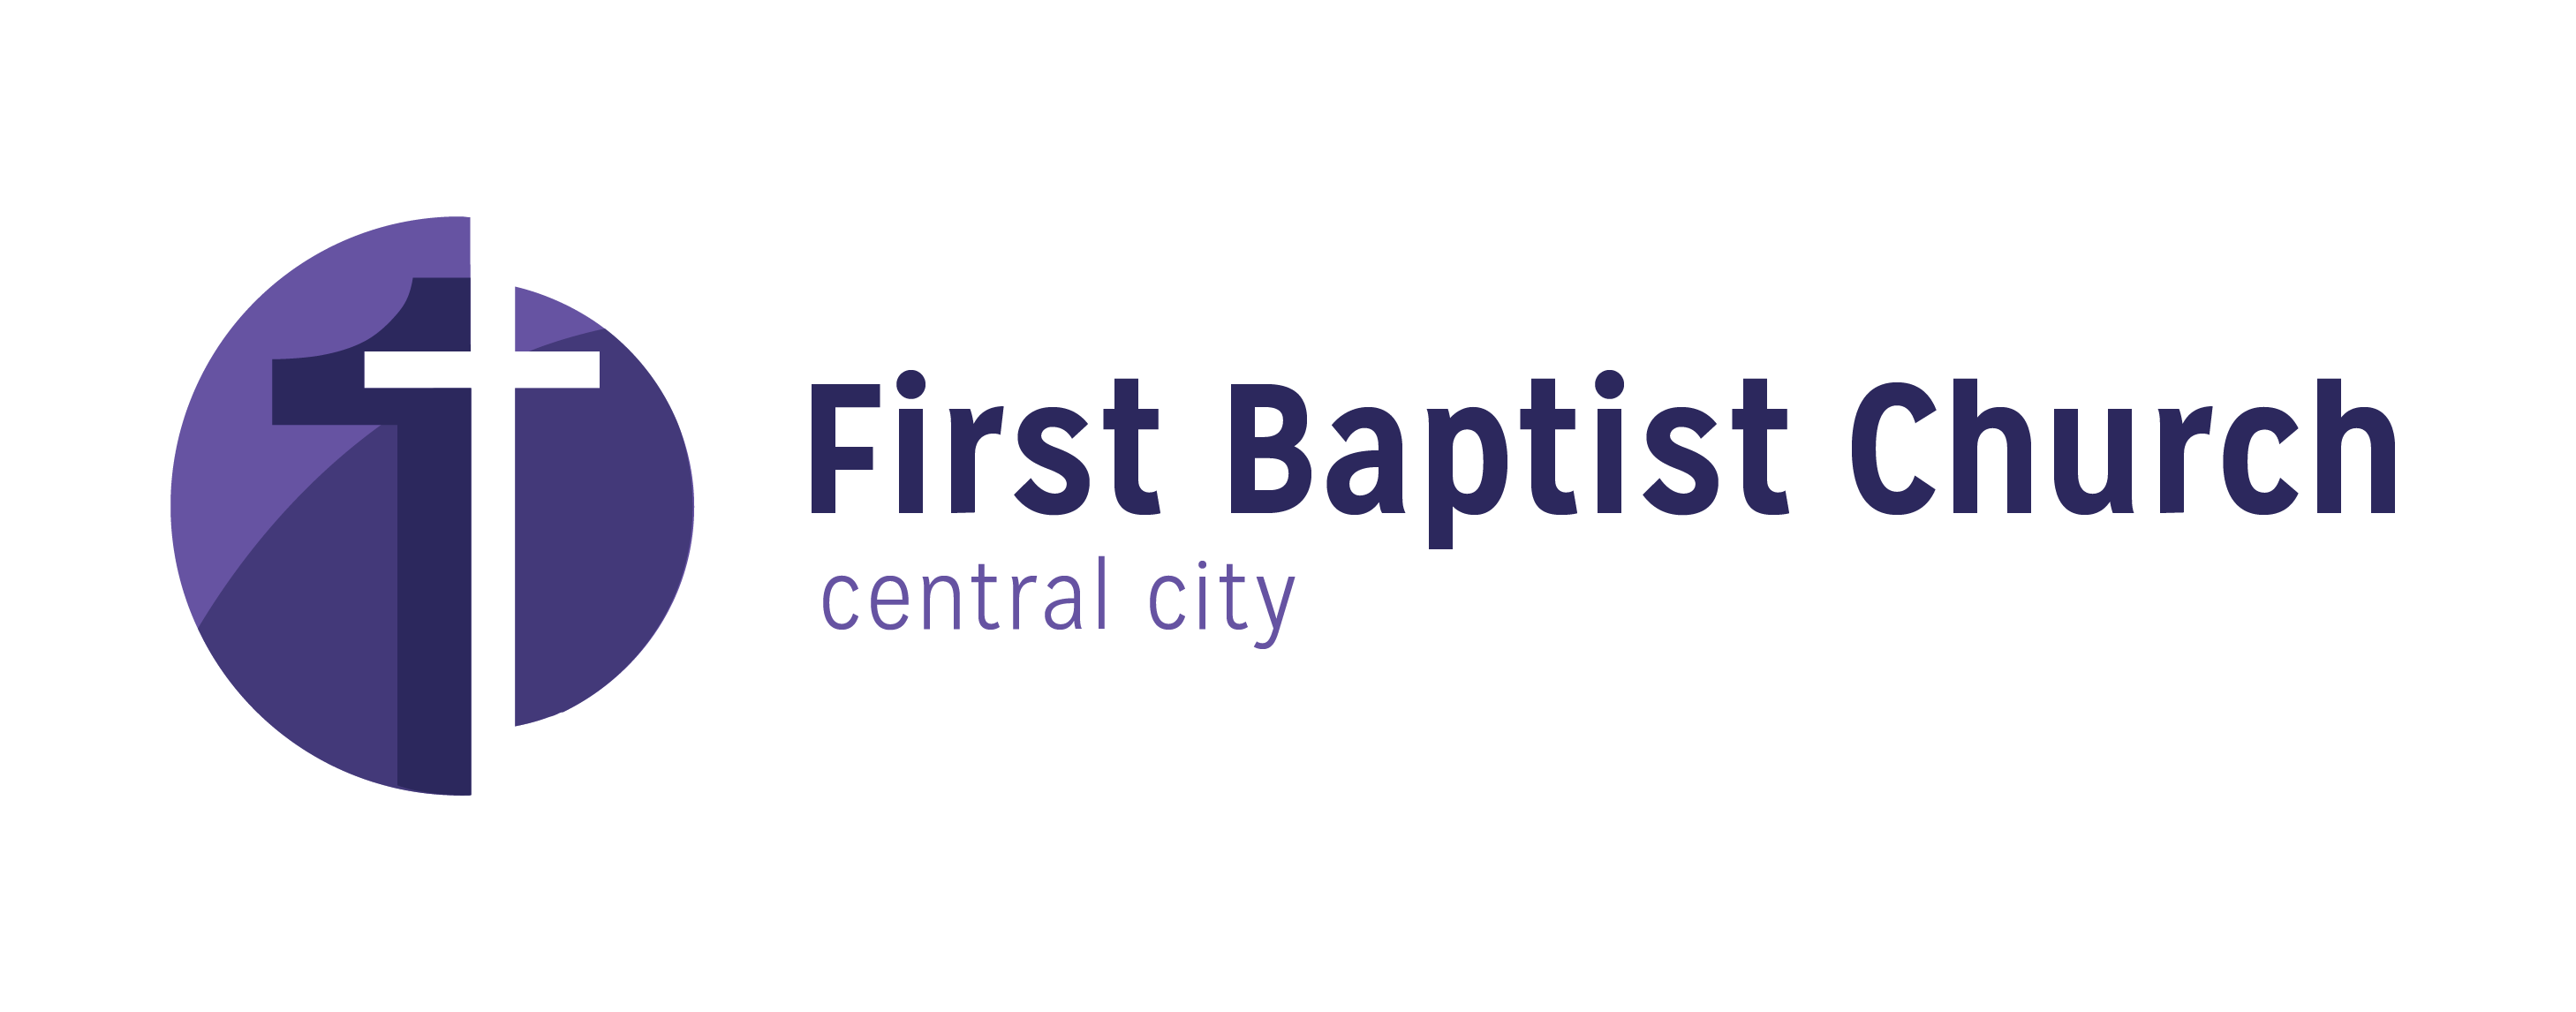 First baptist church grove city logo png. Home page of central